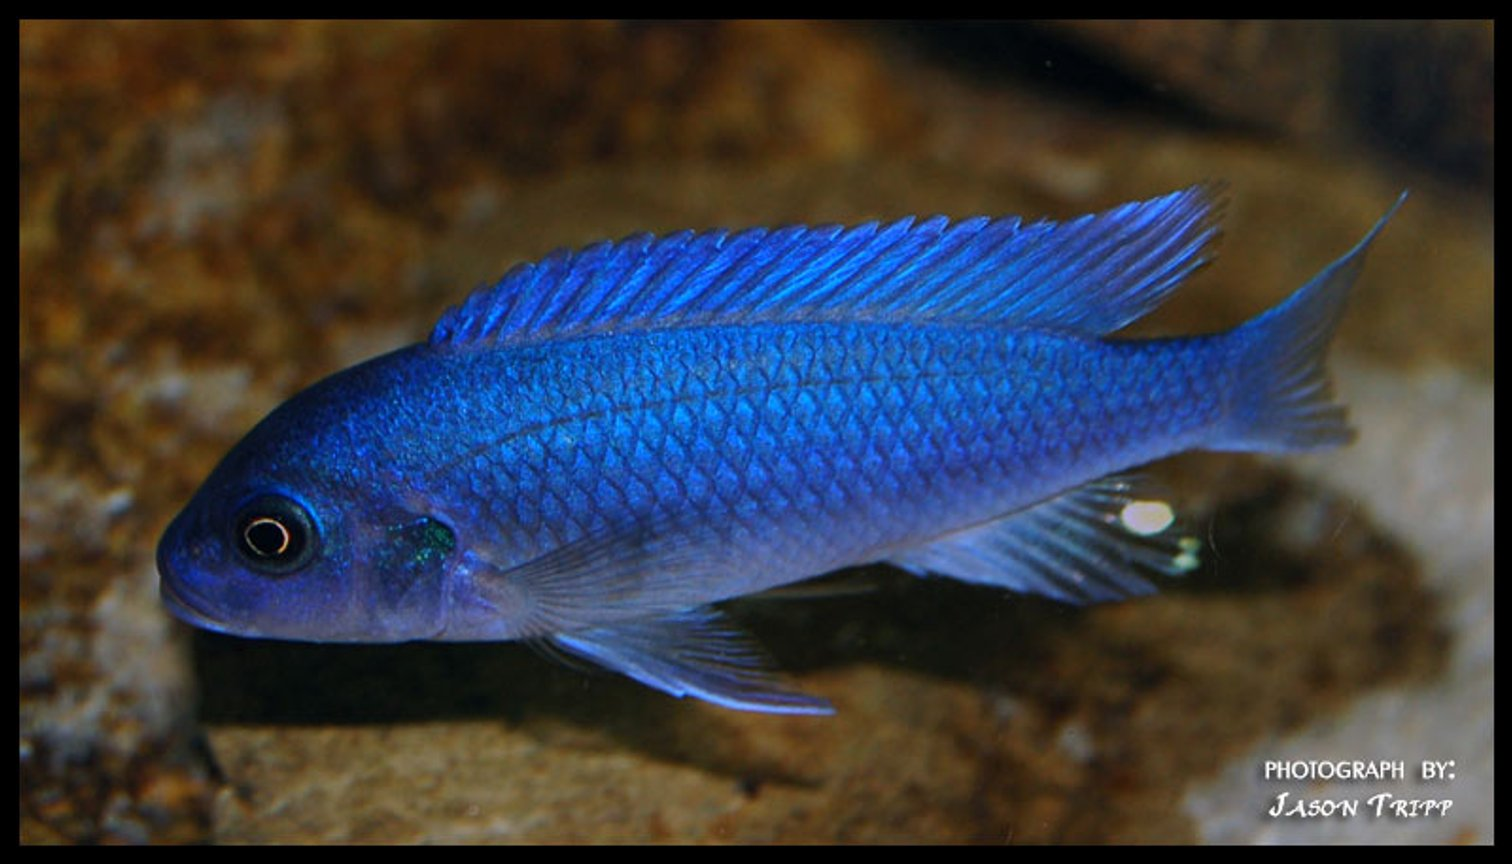 freshwater fish - pseudotropheus estherae - red zebra cichlid stocking in 47 gallons tank - Red Zebra African Cichlid